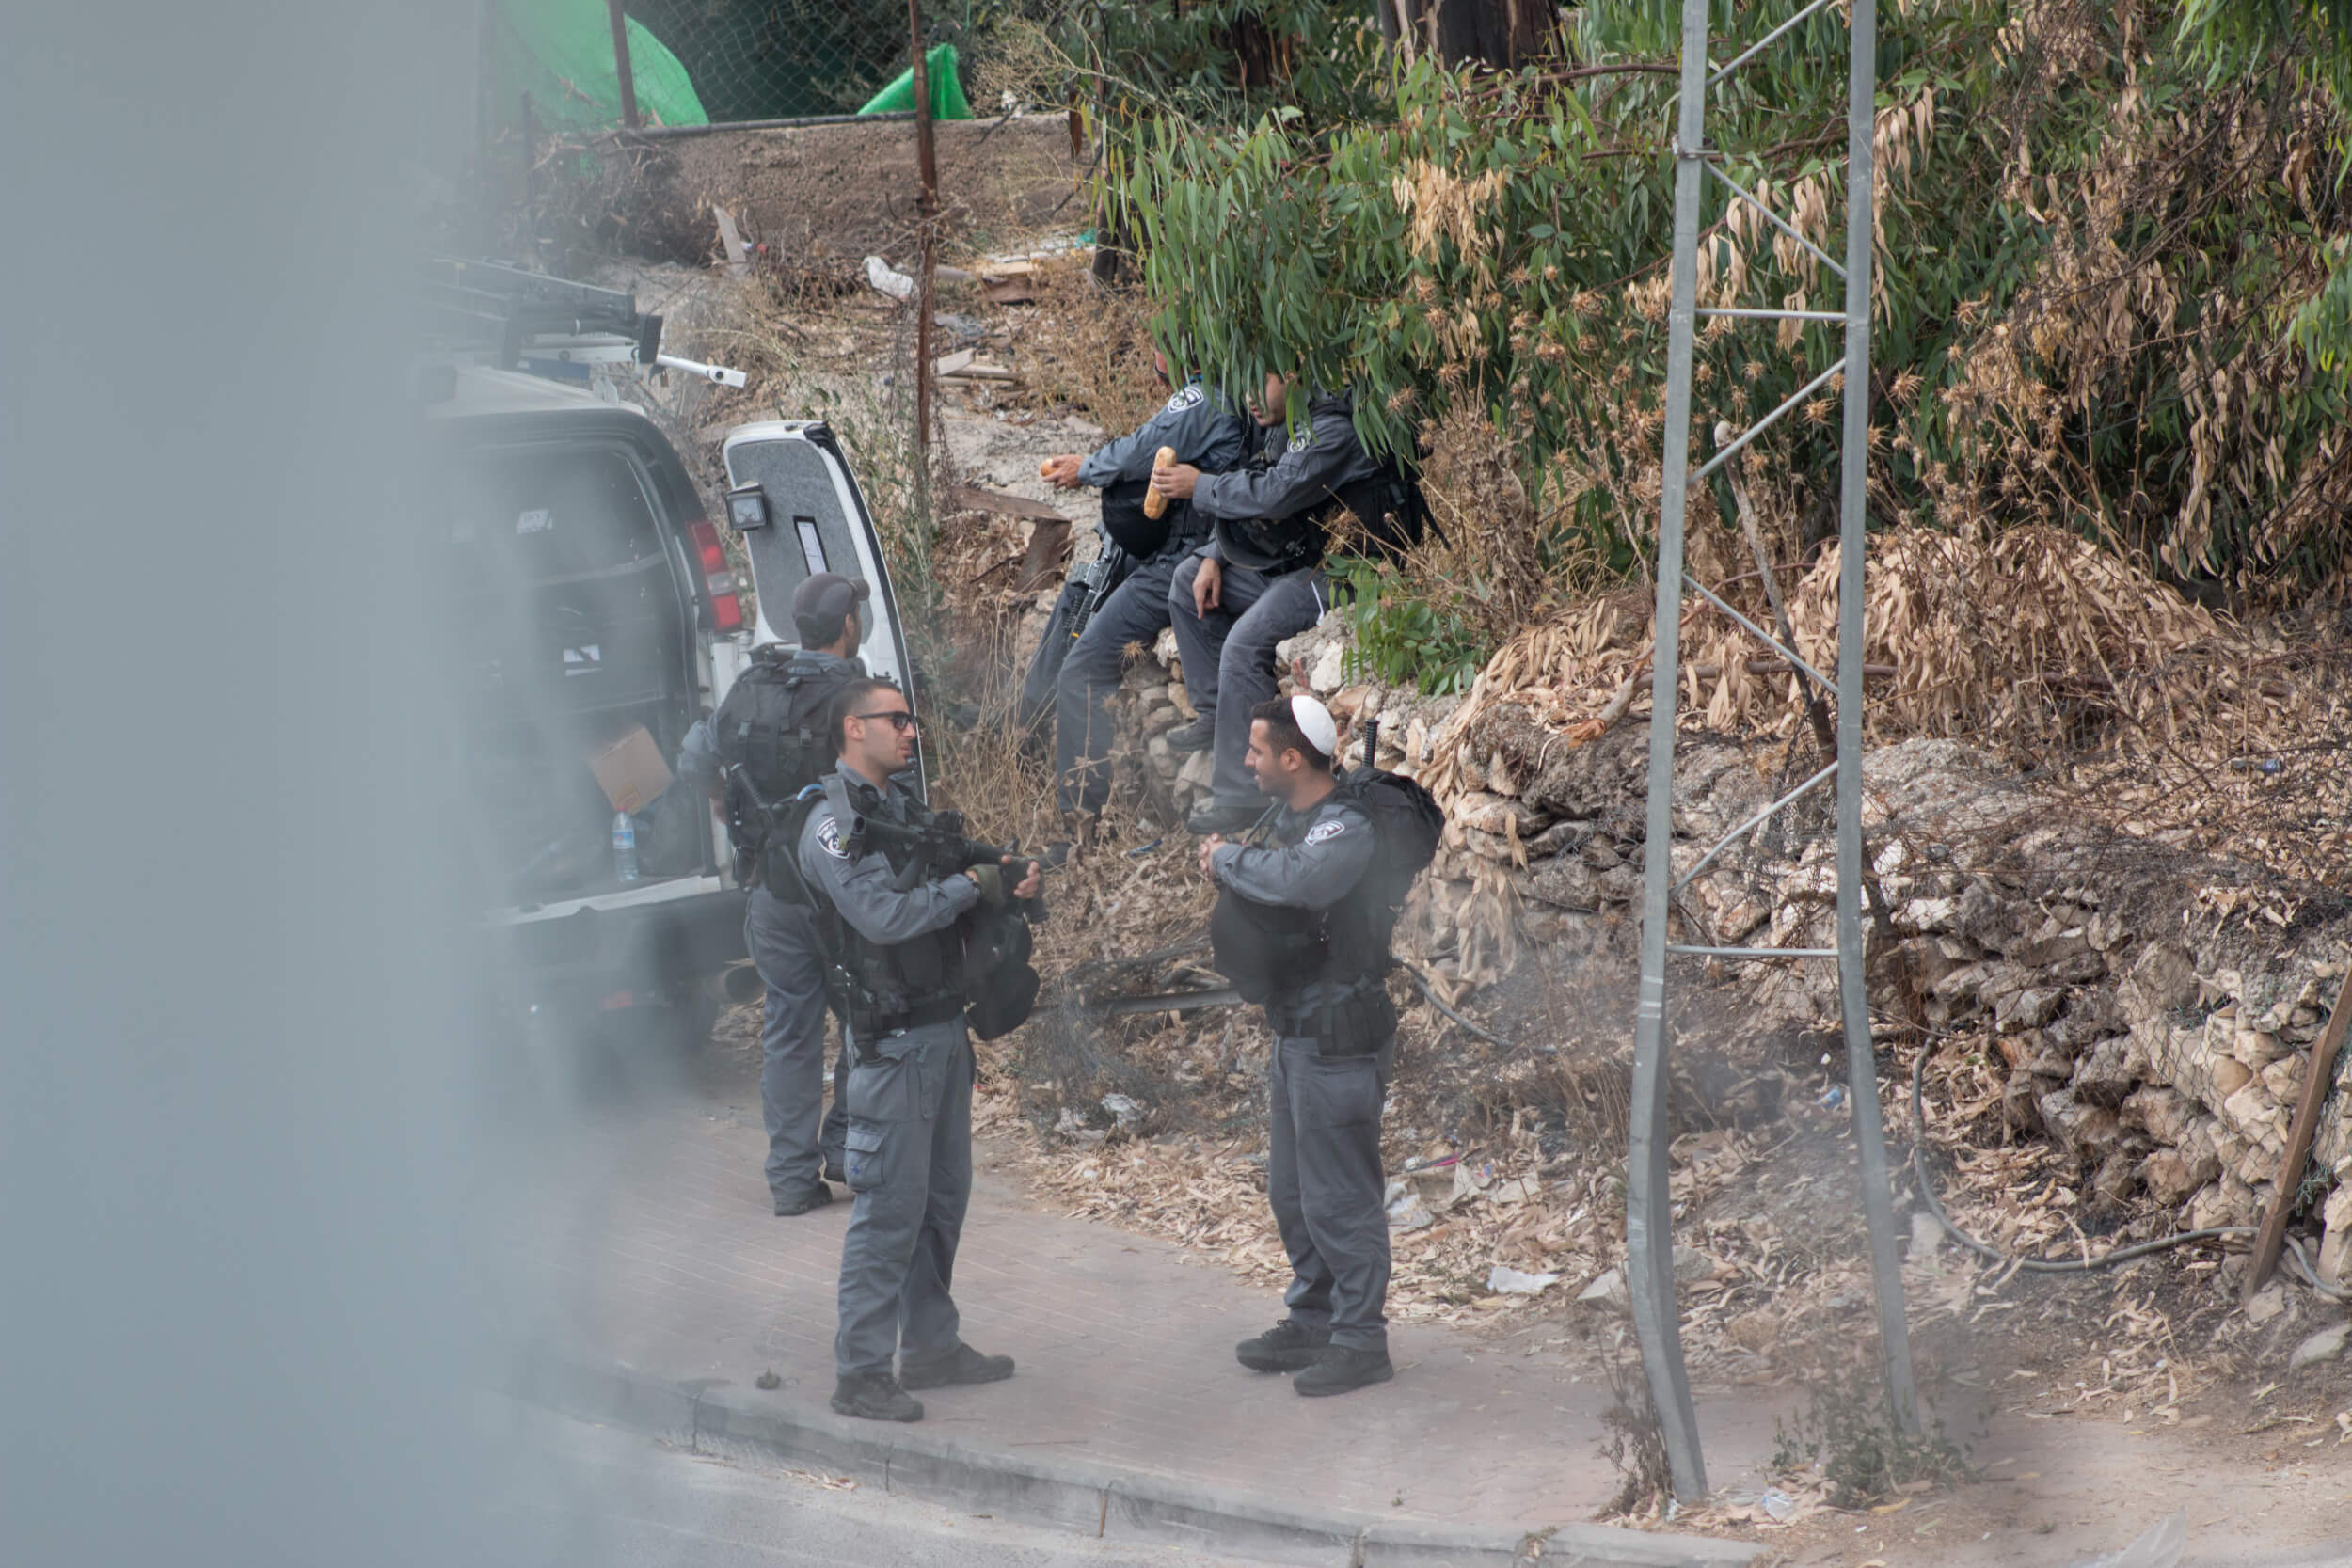 Israeli riot police wait on the other side after jeeps arrived on the West Bank side of the wall to disperse those trying to cross.(Photo: Karam Saleem)